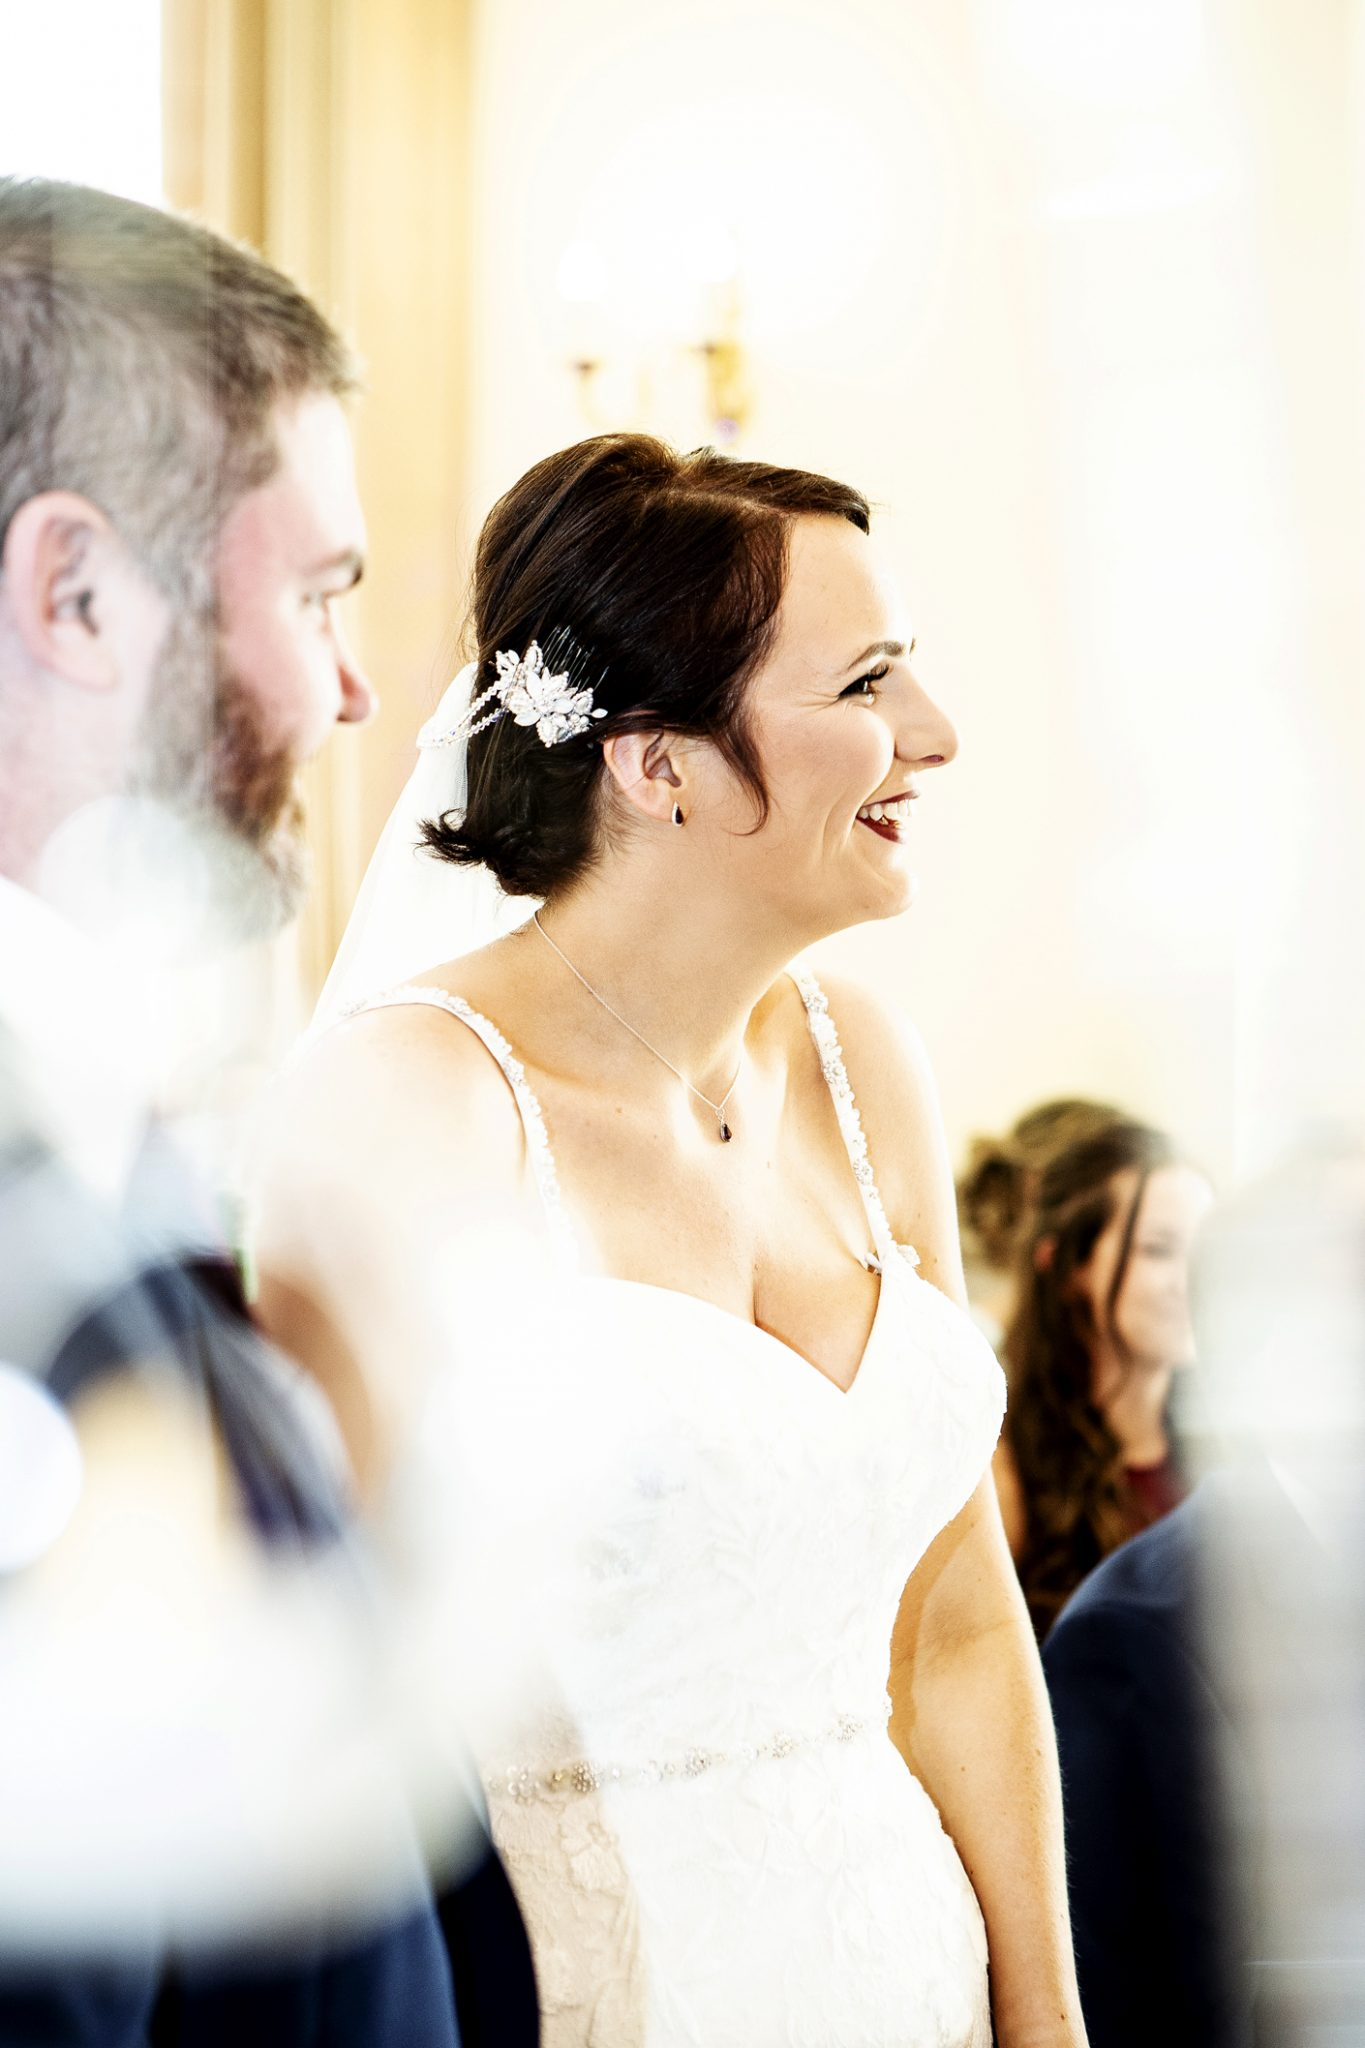 wedding-photography-of-the-bride-at-the-wedding-venue-nunsmere-hall-northwich-cheshire